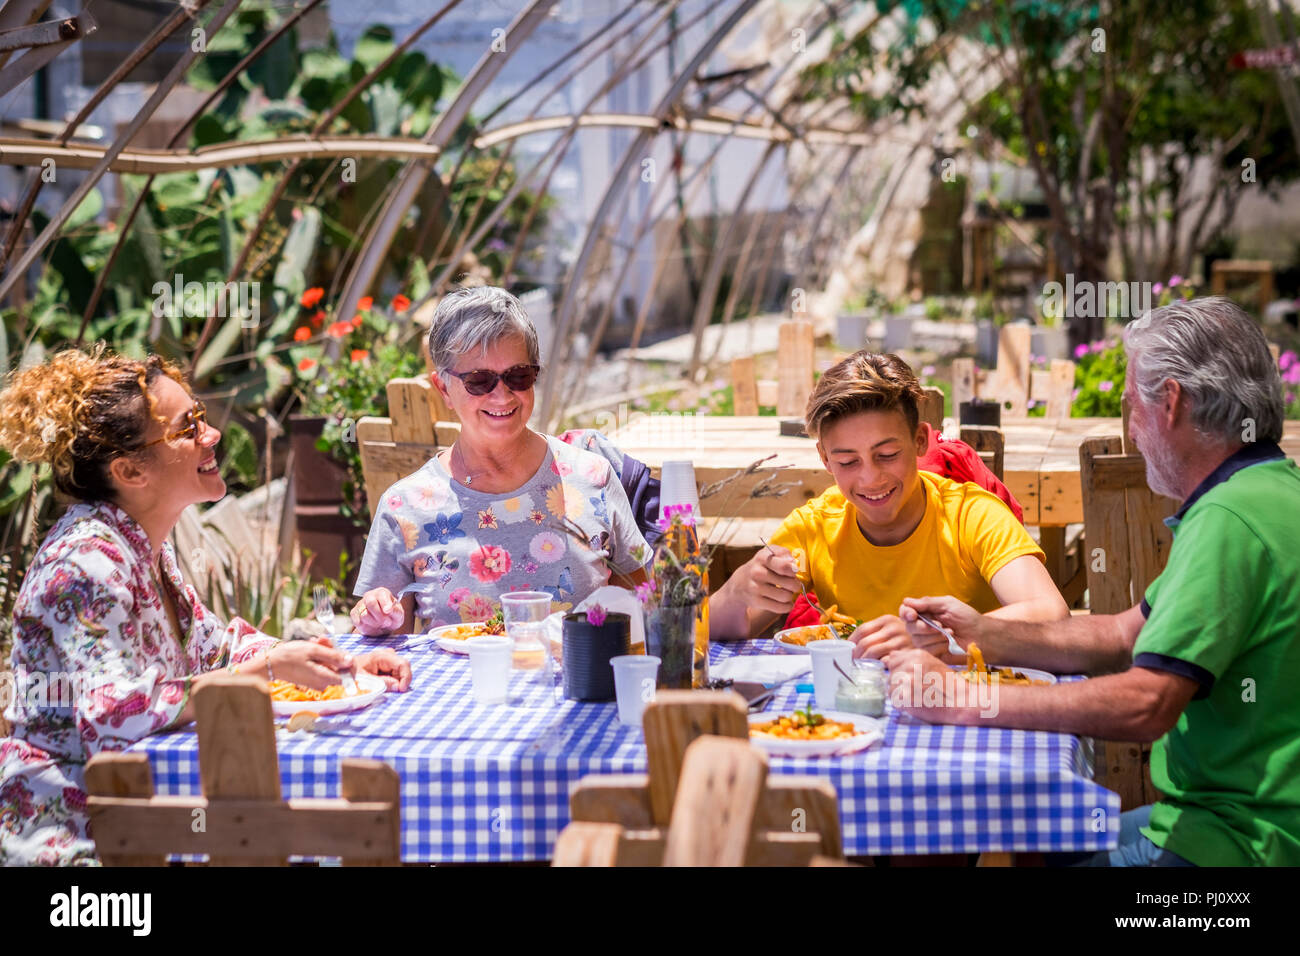 cheerful and happy family in alternative outdoor restaurant all natural and made with recycled wood pallets. nice caucasian people in leisure activity - Stock Image